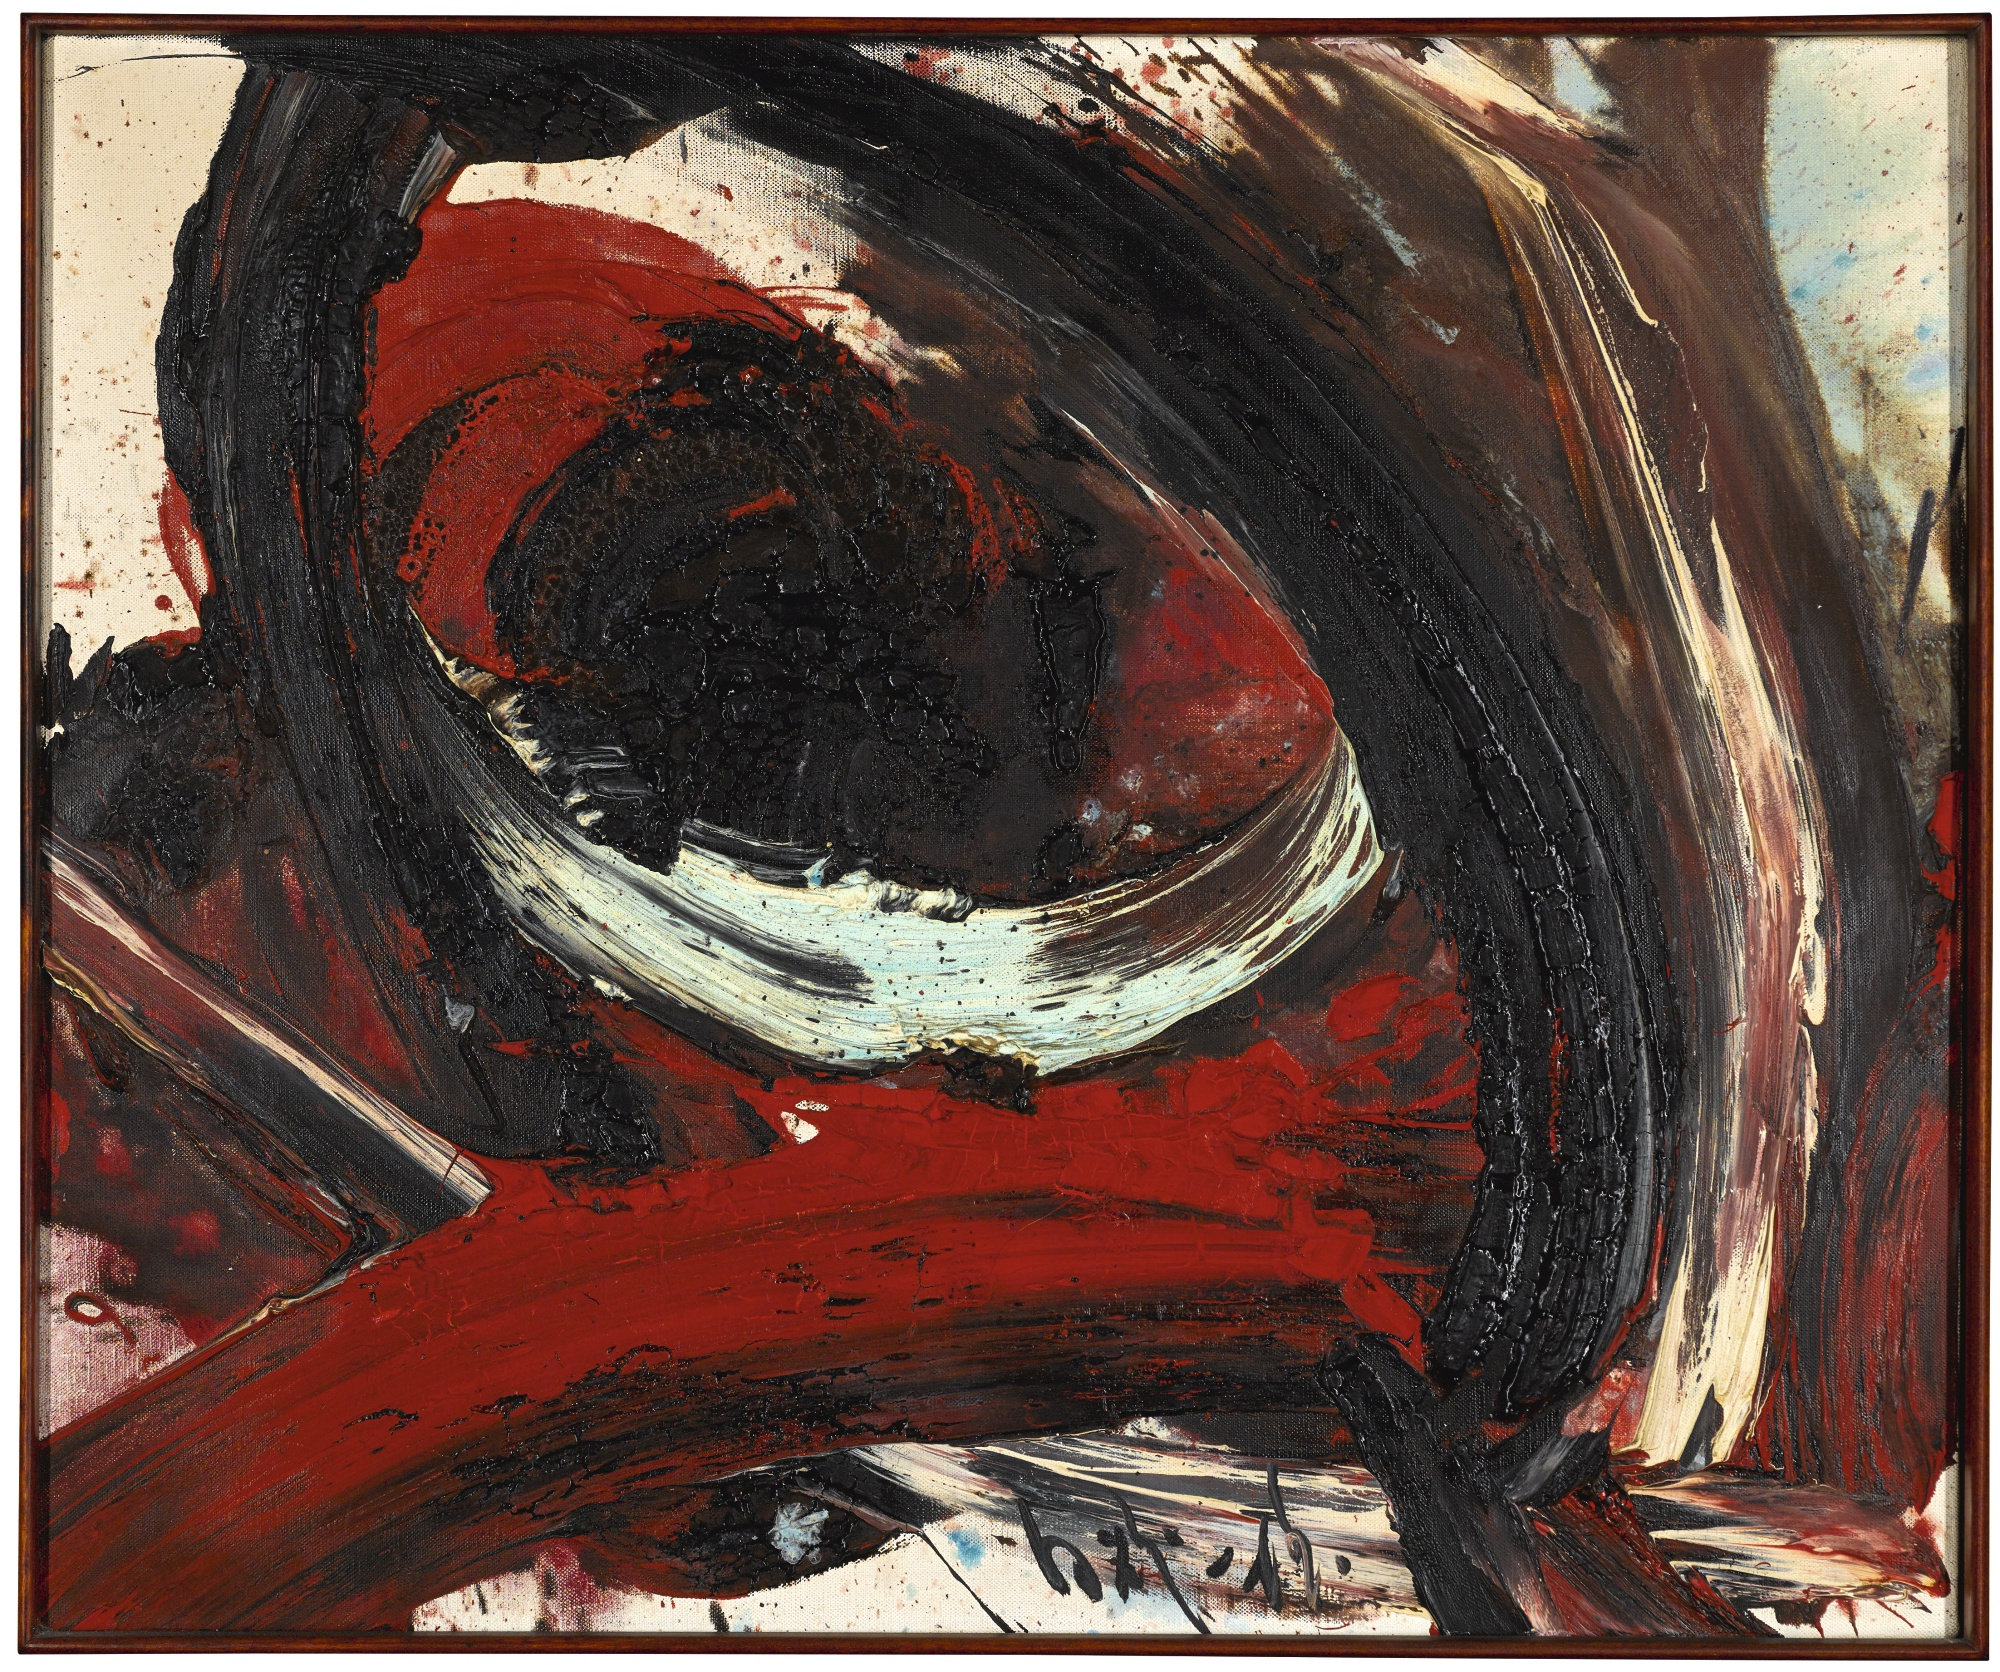 Kazuo Shiraga-Untitled-1975